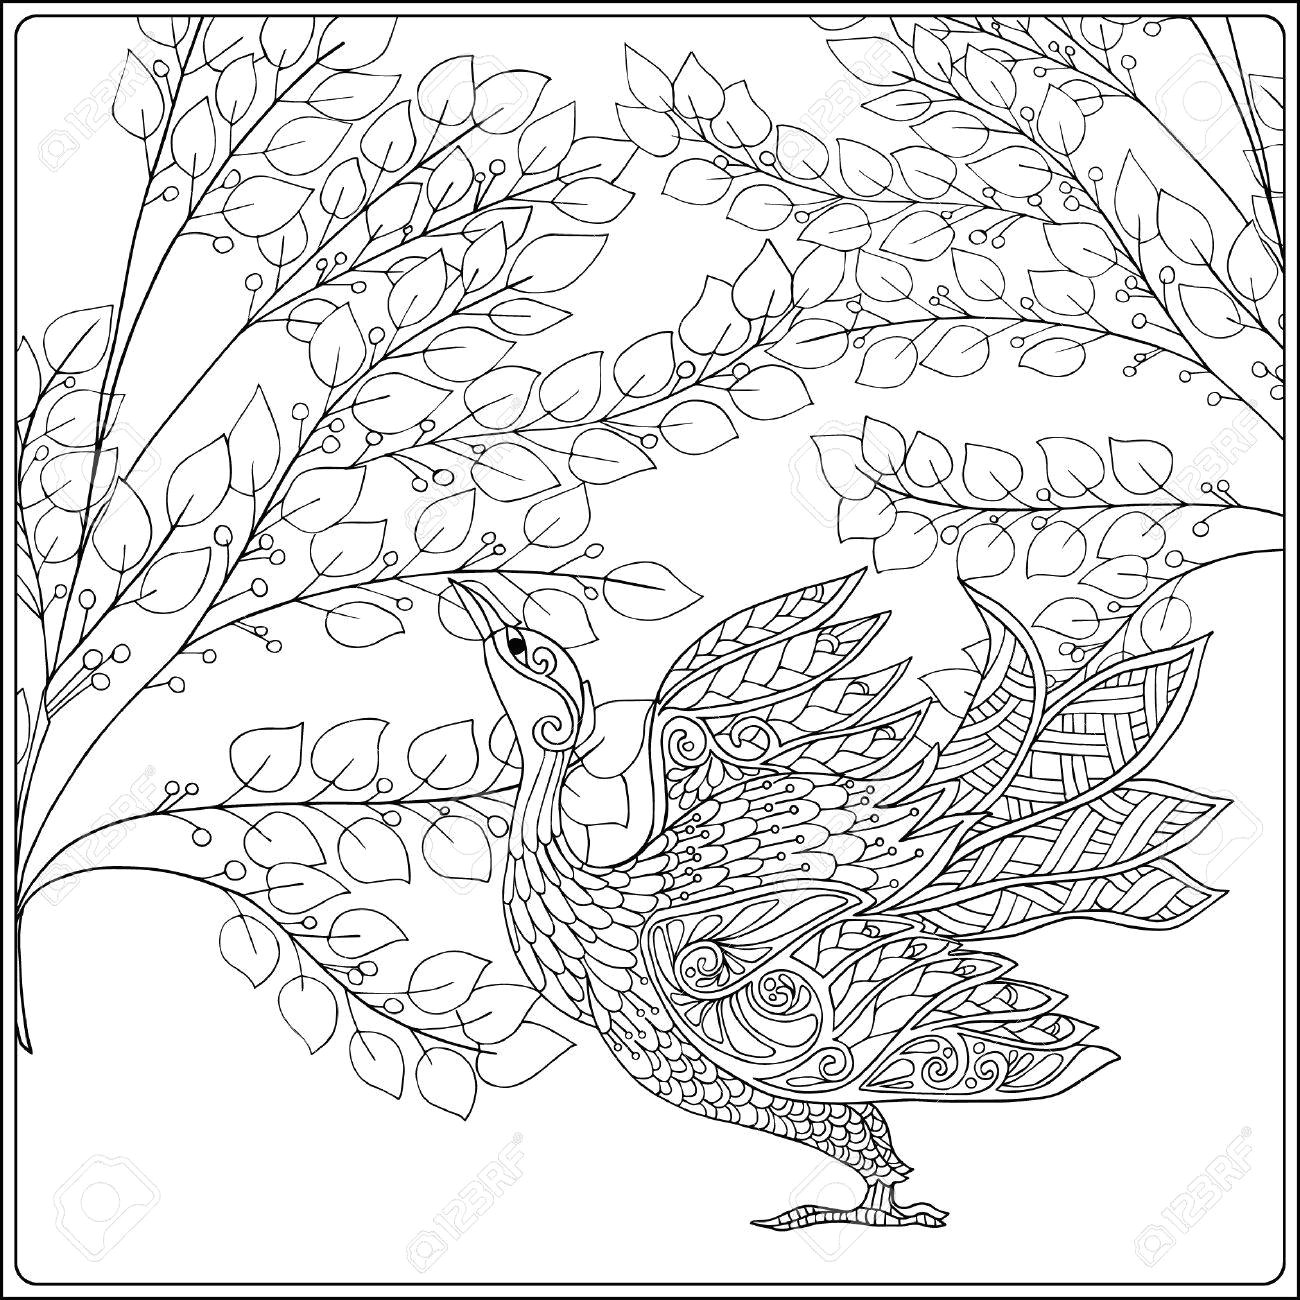 decorative flowers and bird coloring book for adult and older children coloring page